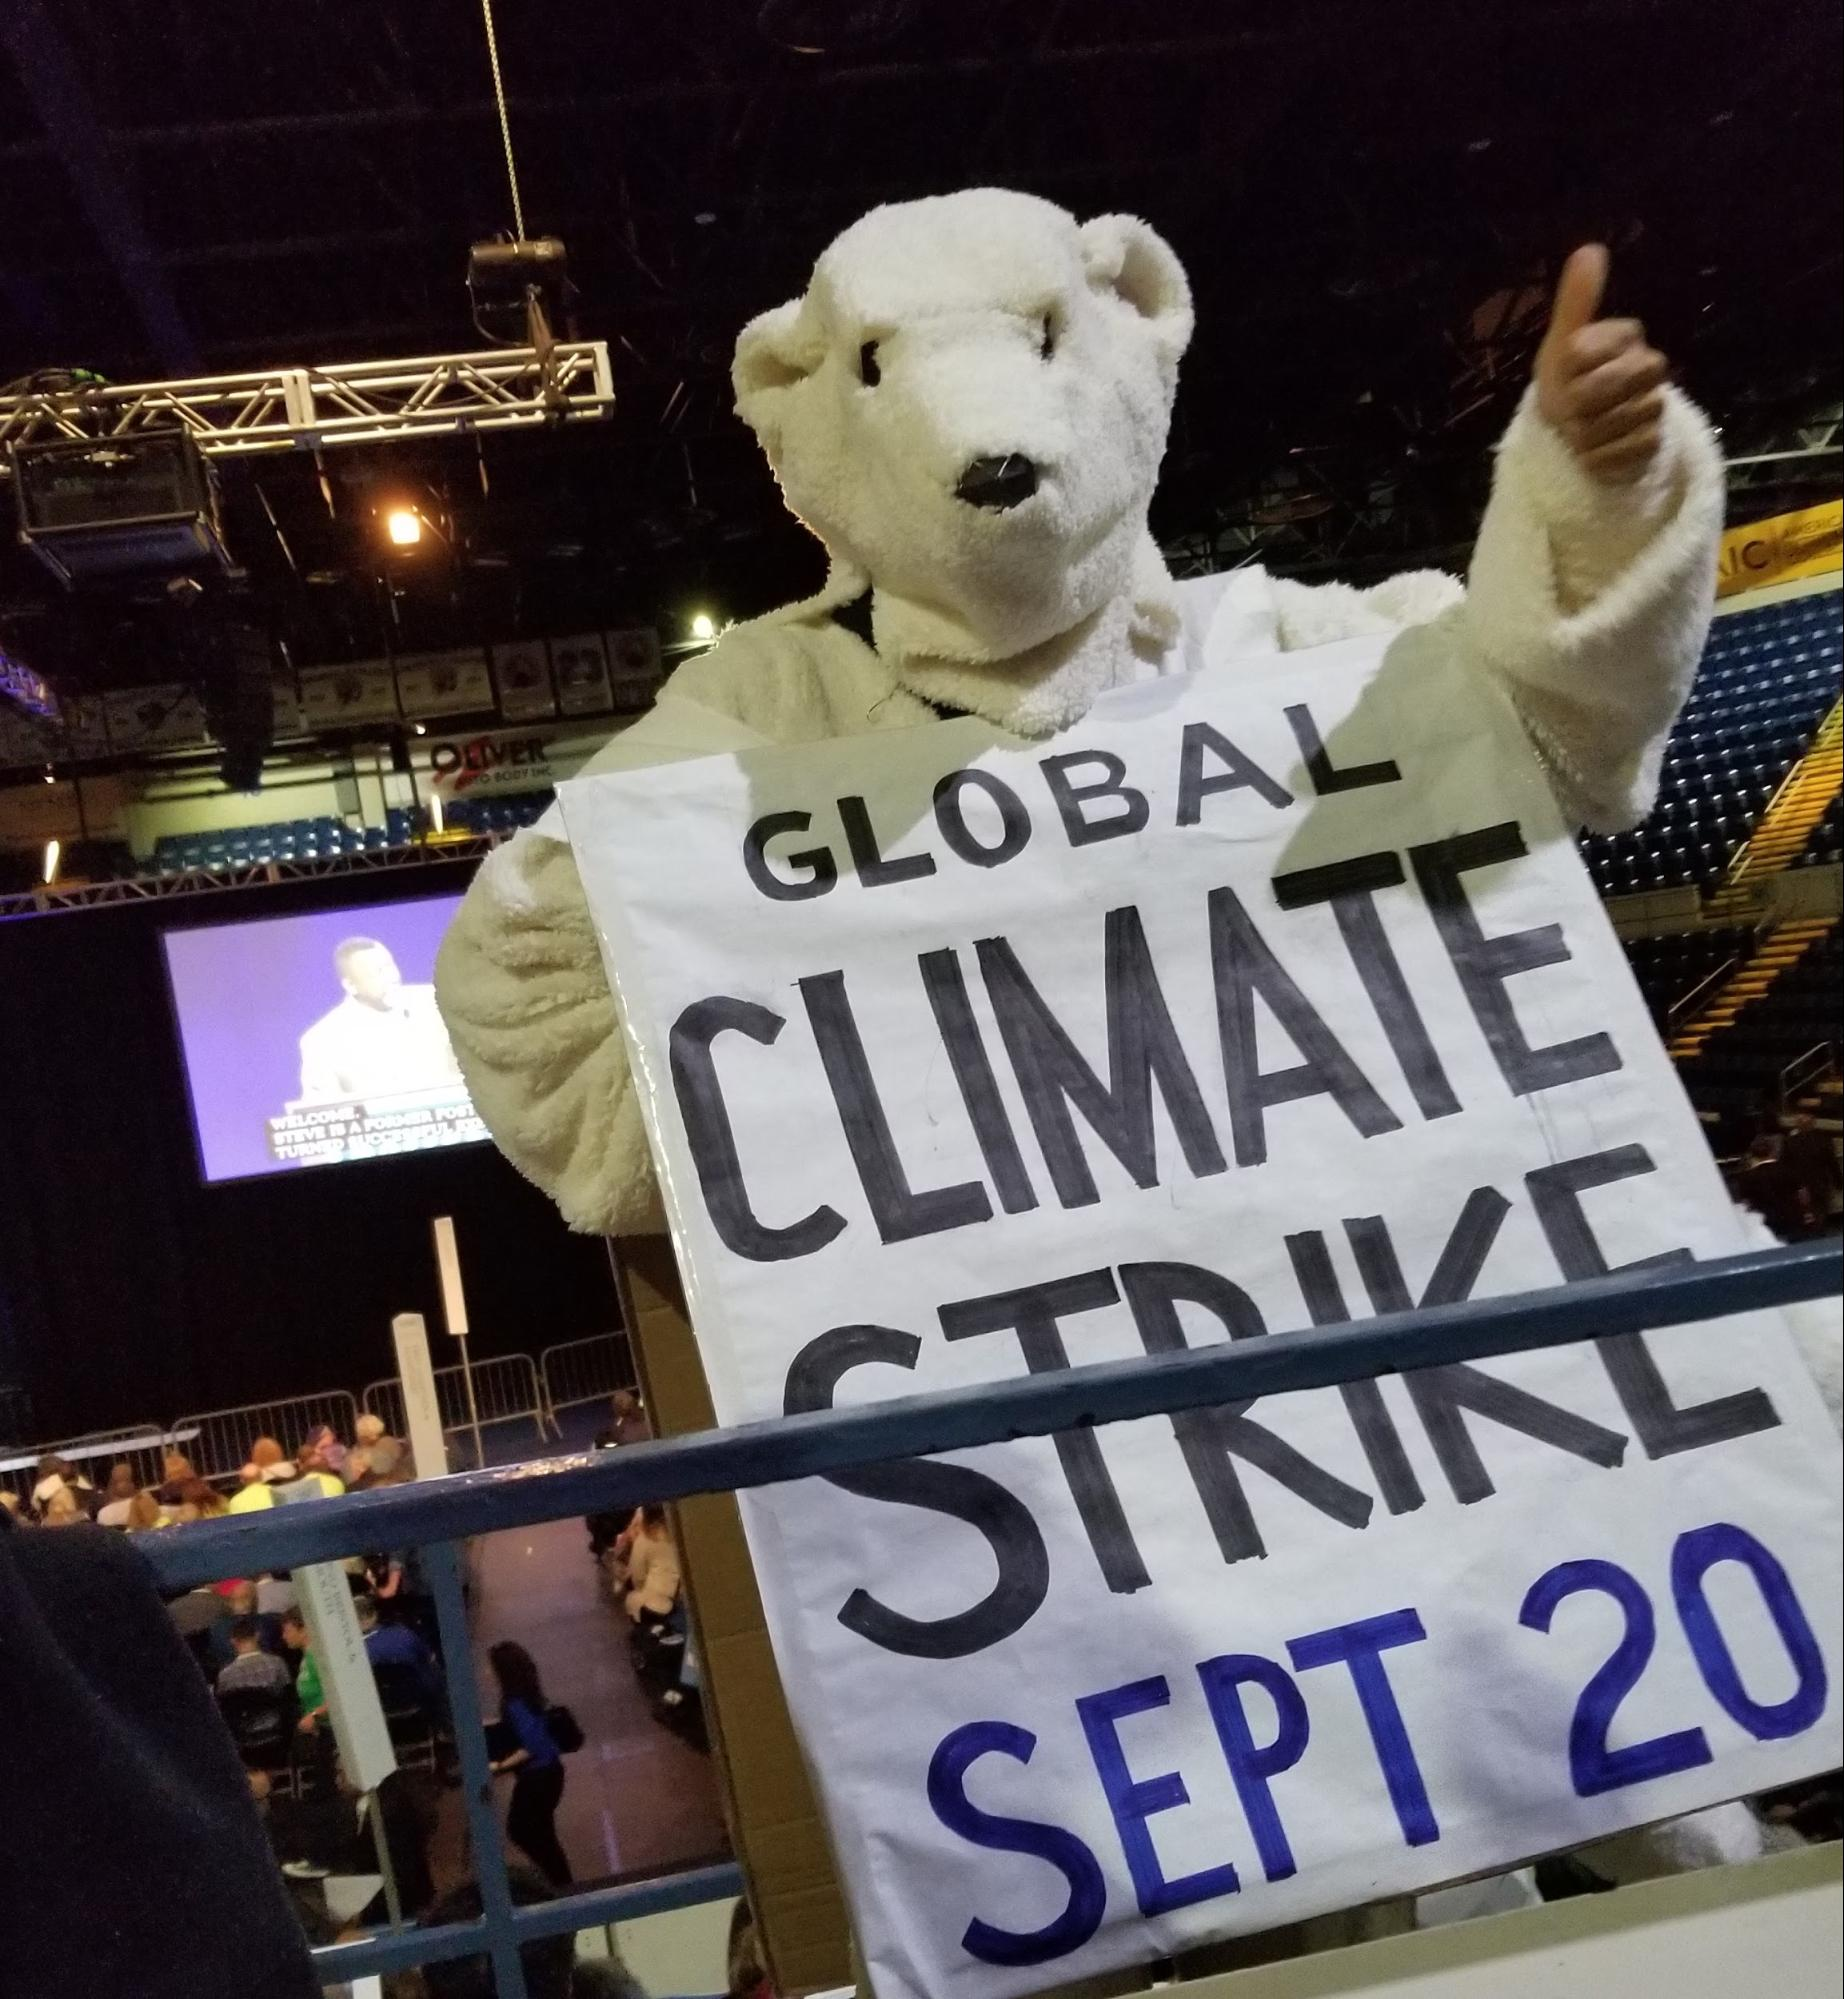 "Photo of protester in polar bear suit holding sign ""Global Climate Strike - Sept 2019"", promoting the Global Climate Strike at the Massachusetts Democratic Convention."